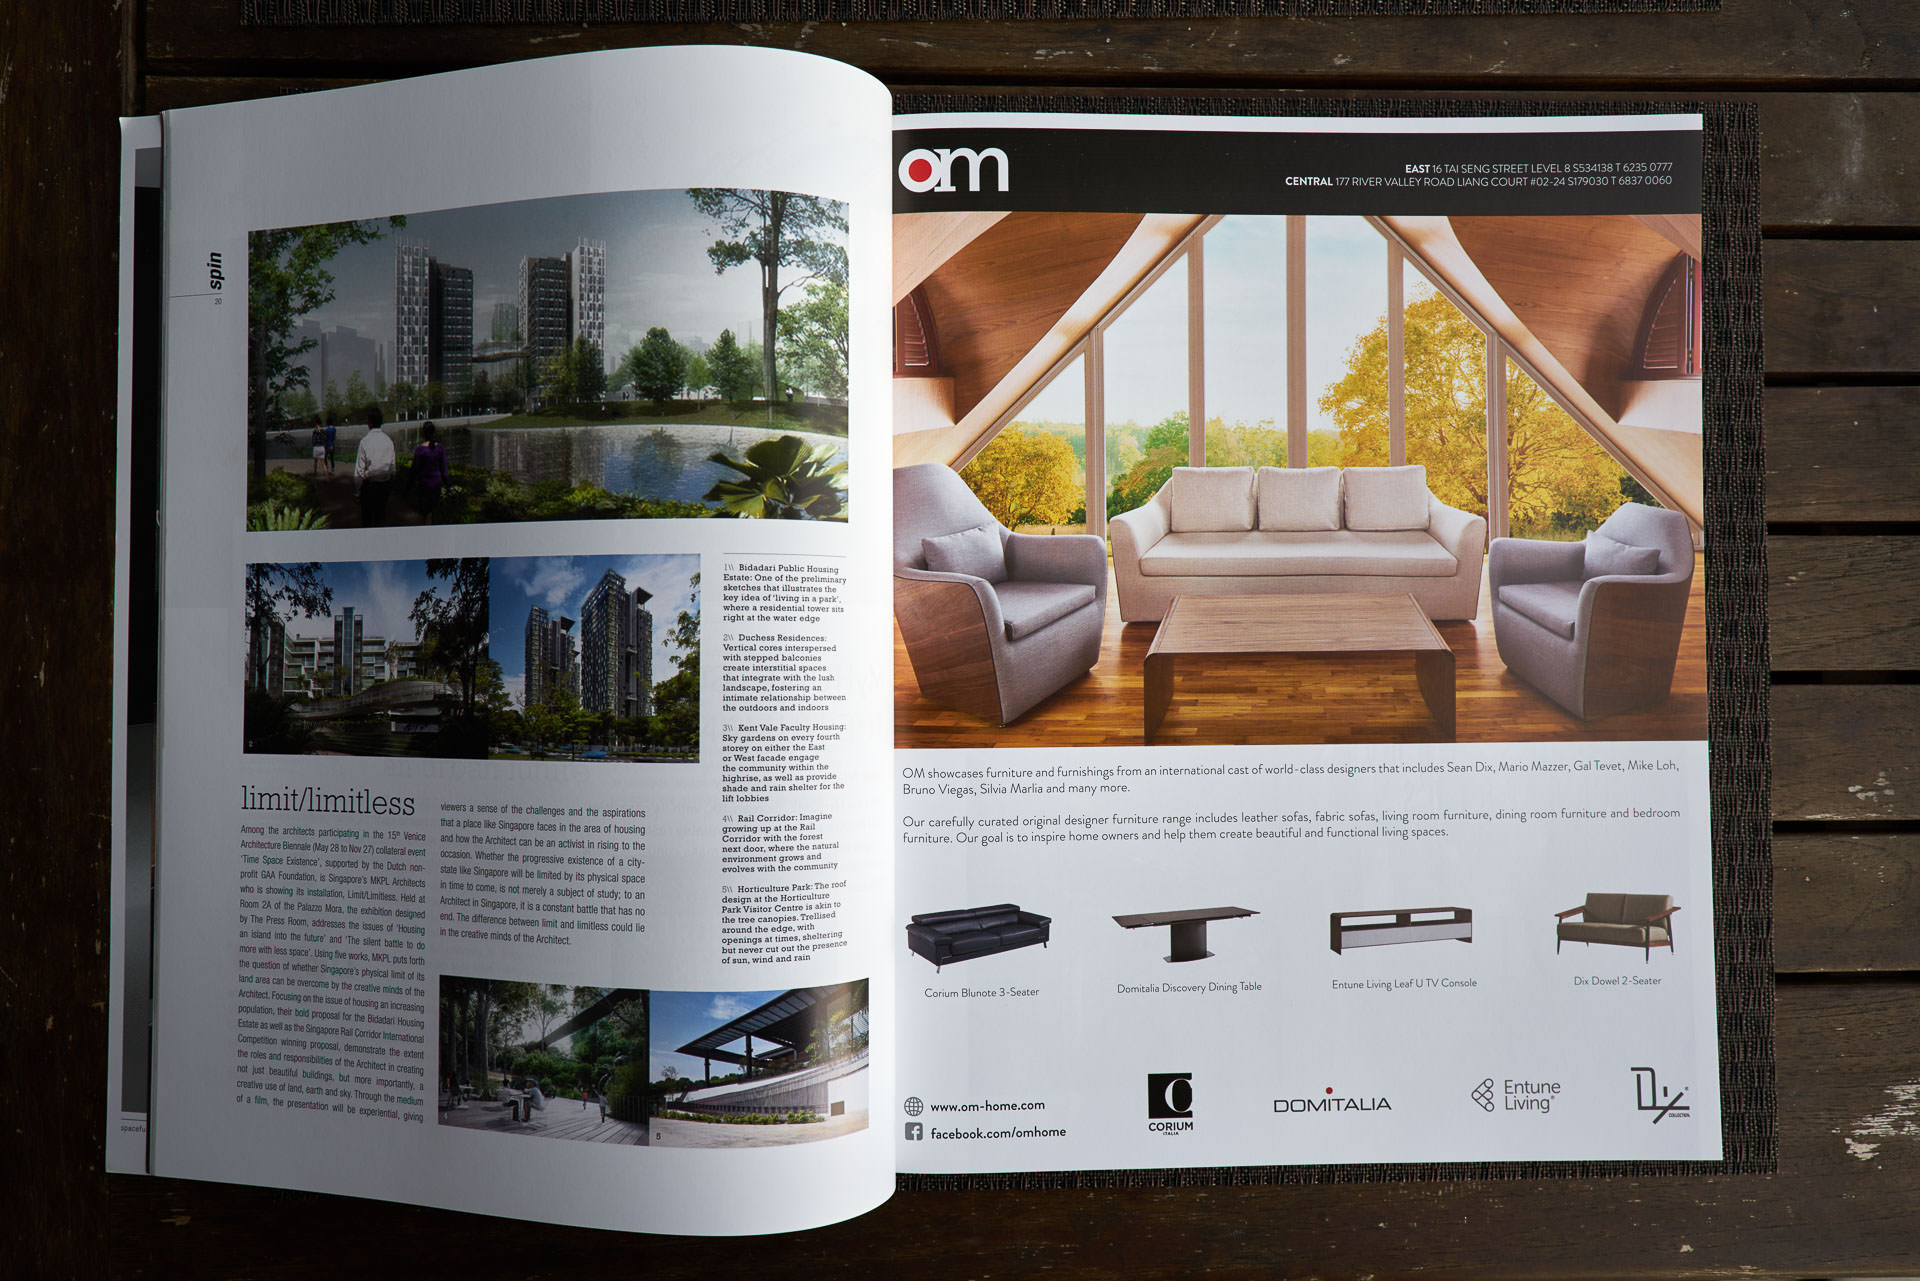 Design and Architecture Magazine issue 92 Showing OM Homes advertisement with image by Christopher O'Grady Photography